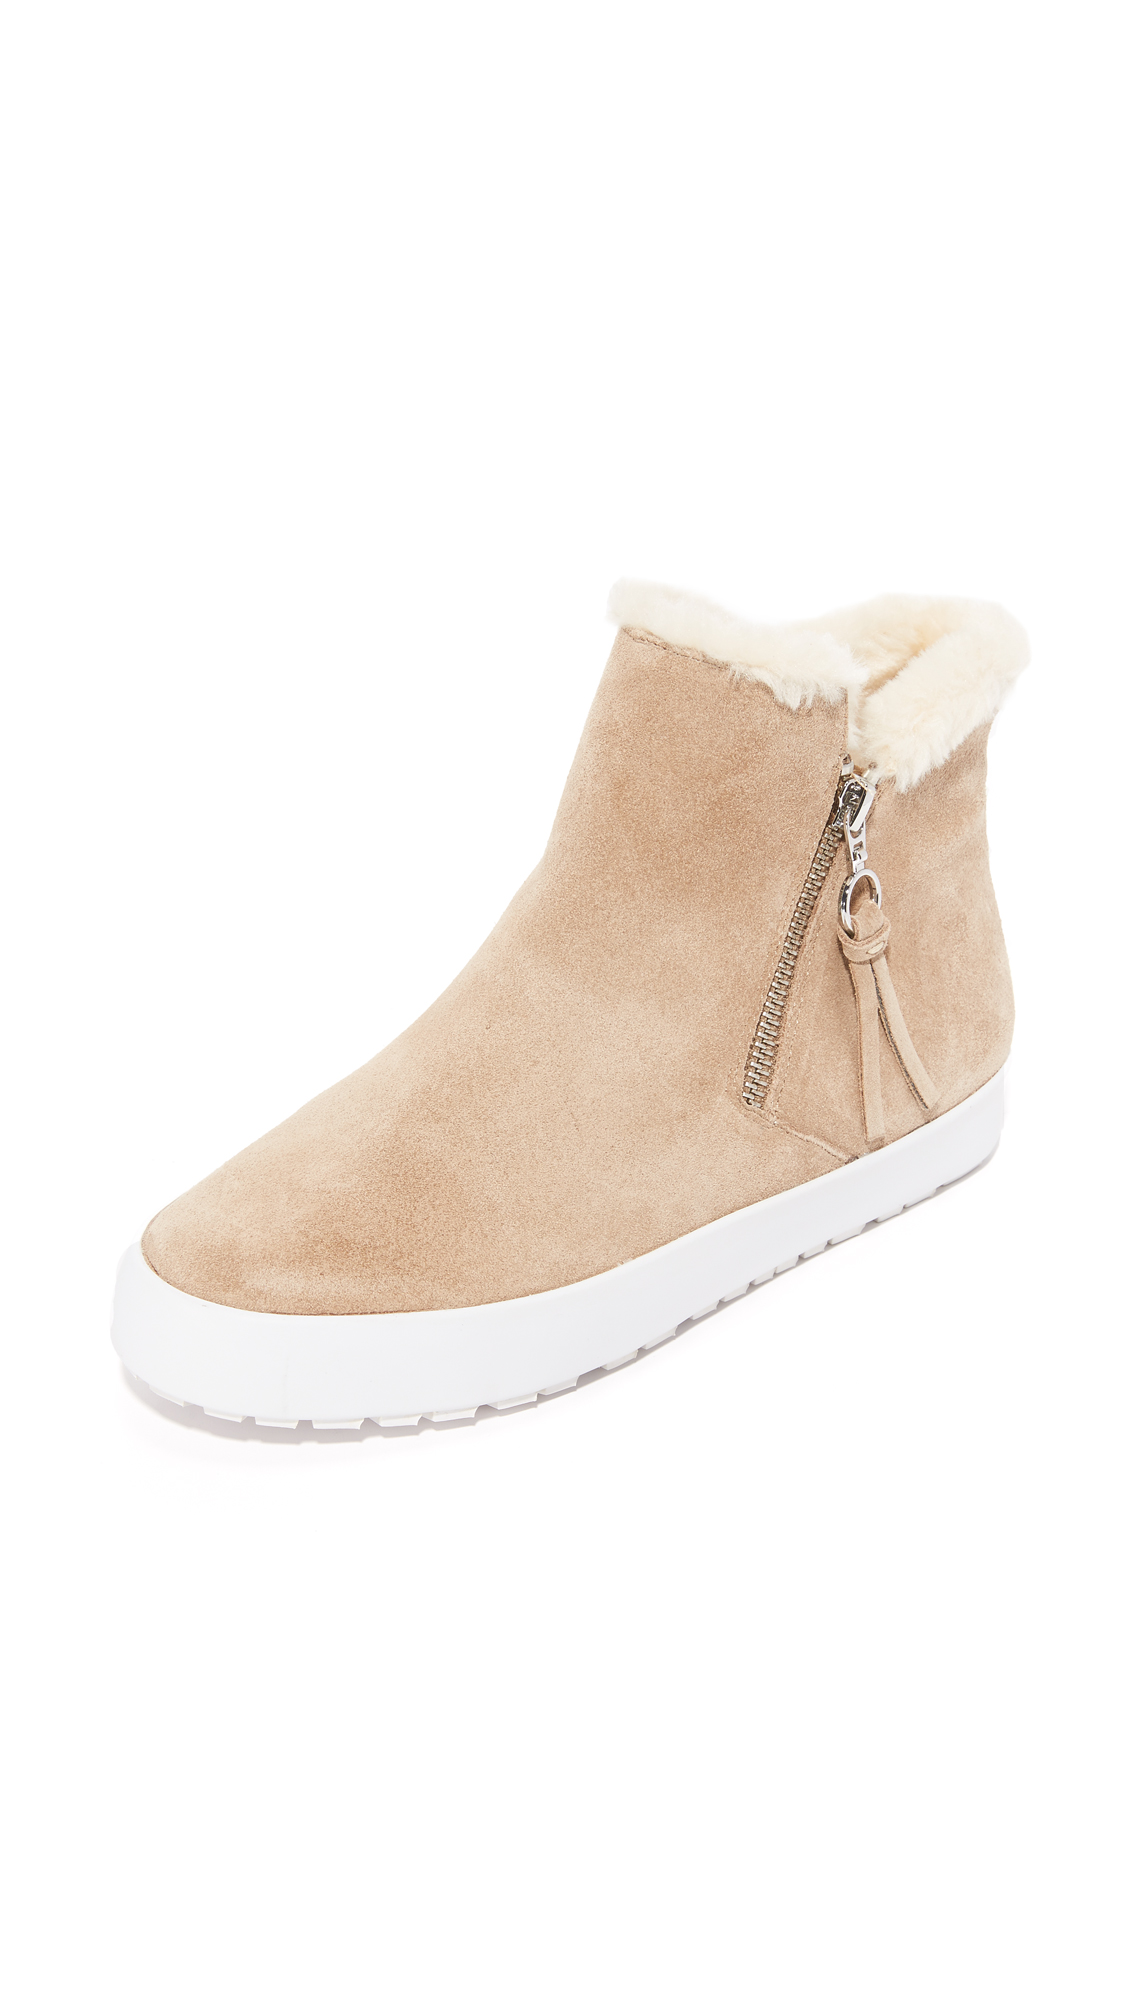 Rebecca Minkoff Shelly Sherpa Booties - Taupe